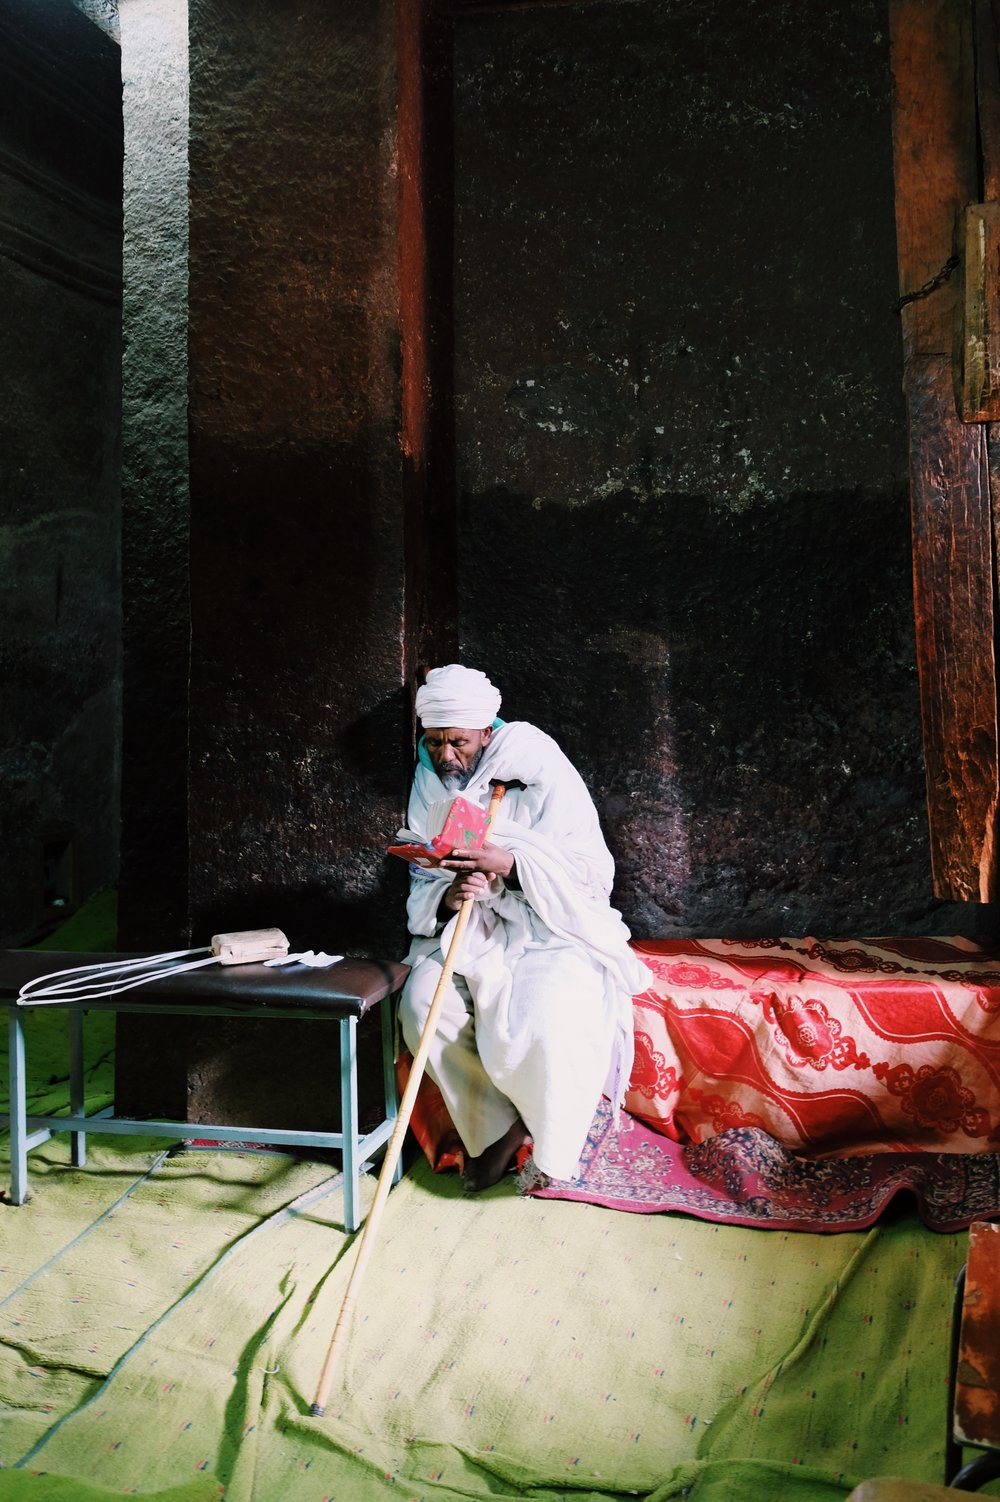 Priest in Lalibela, reading by Joost Bastmeijer.jpeg